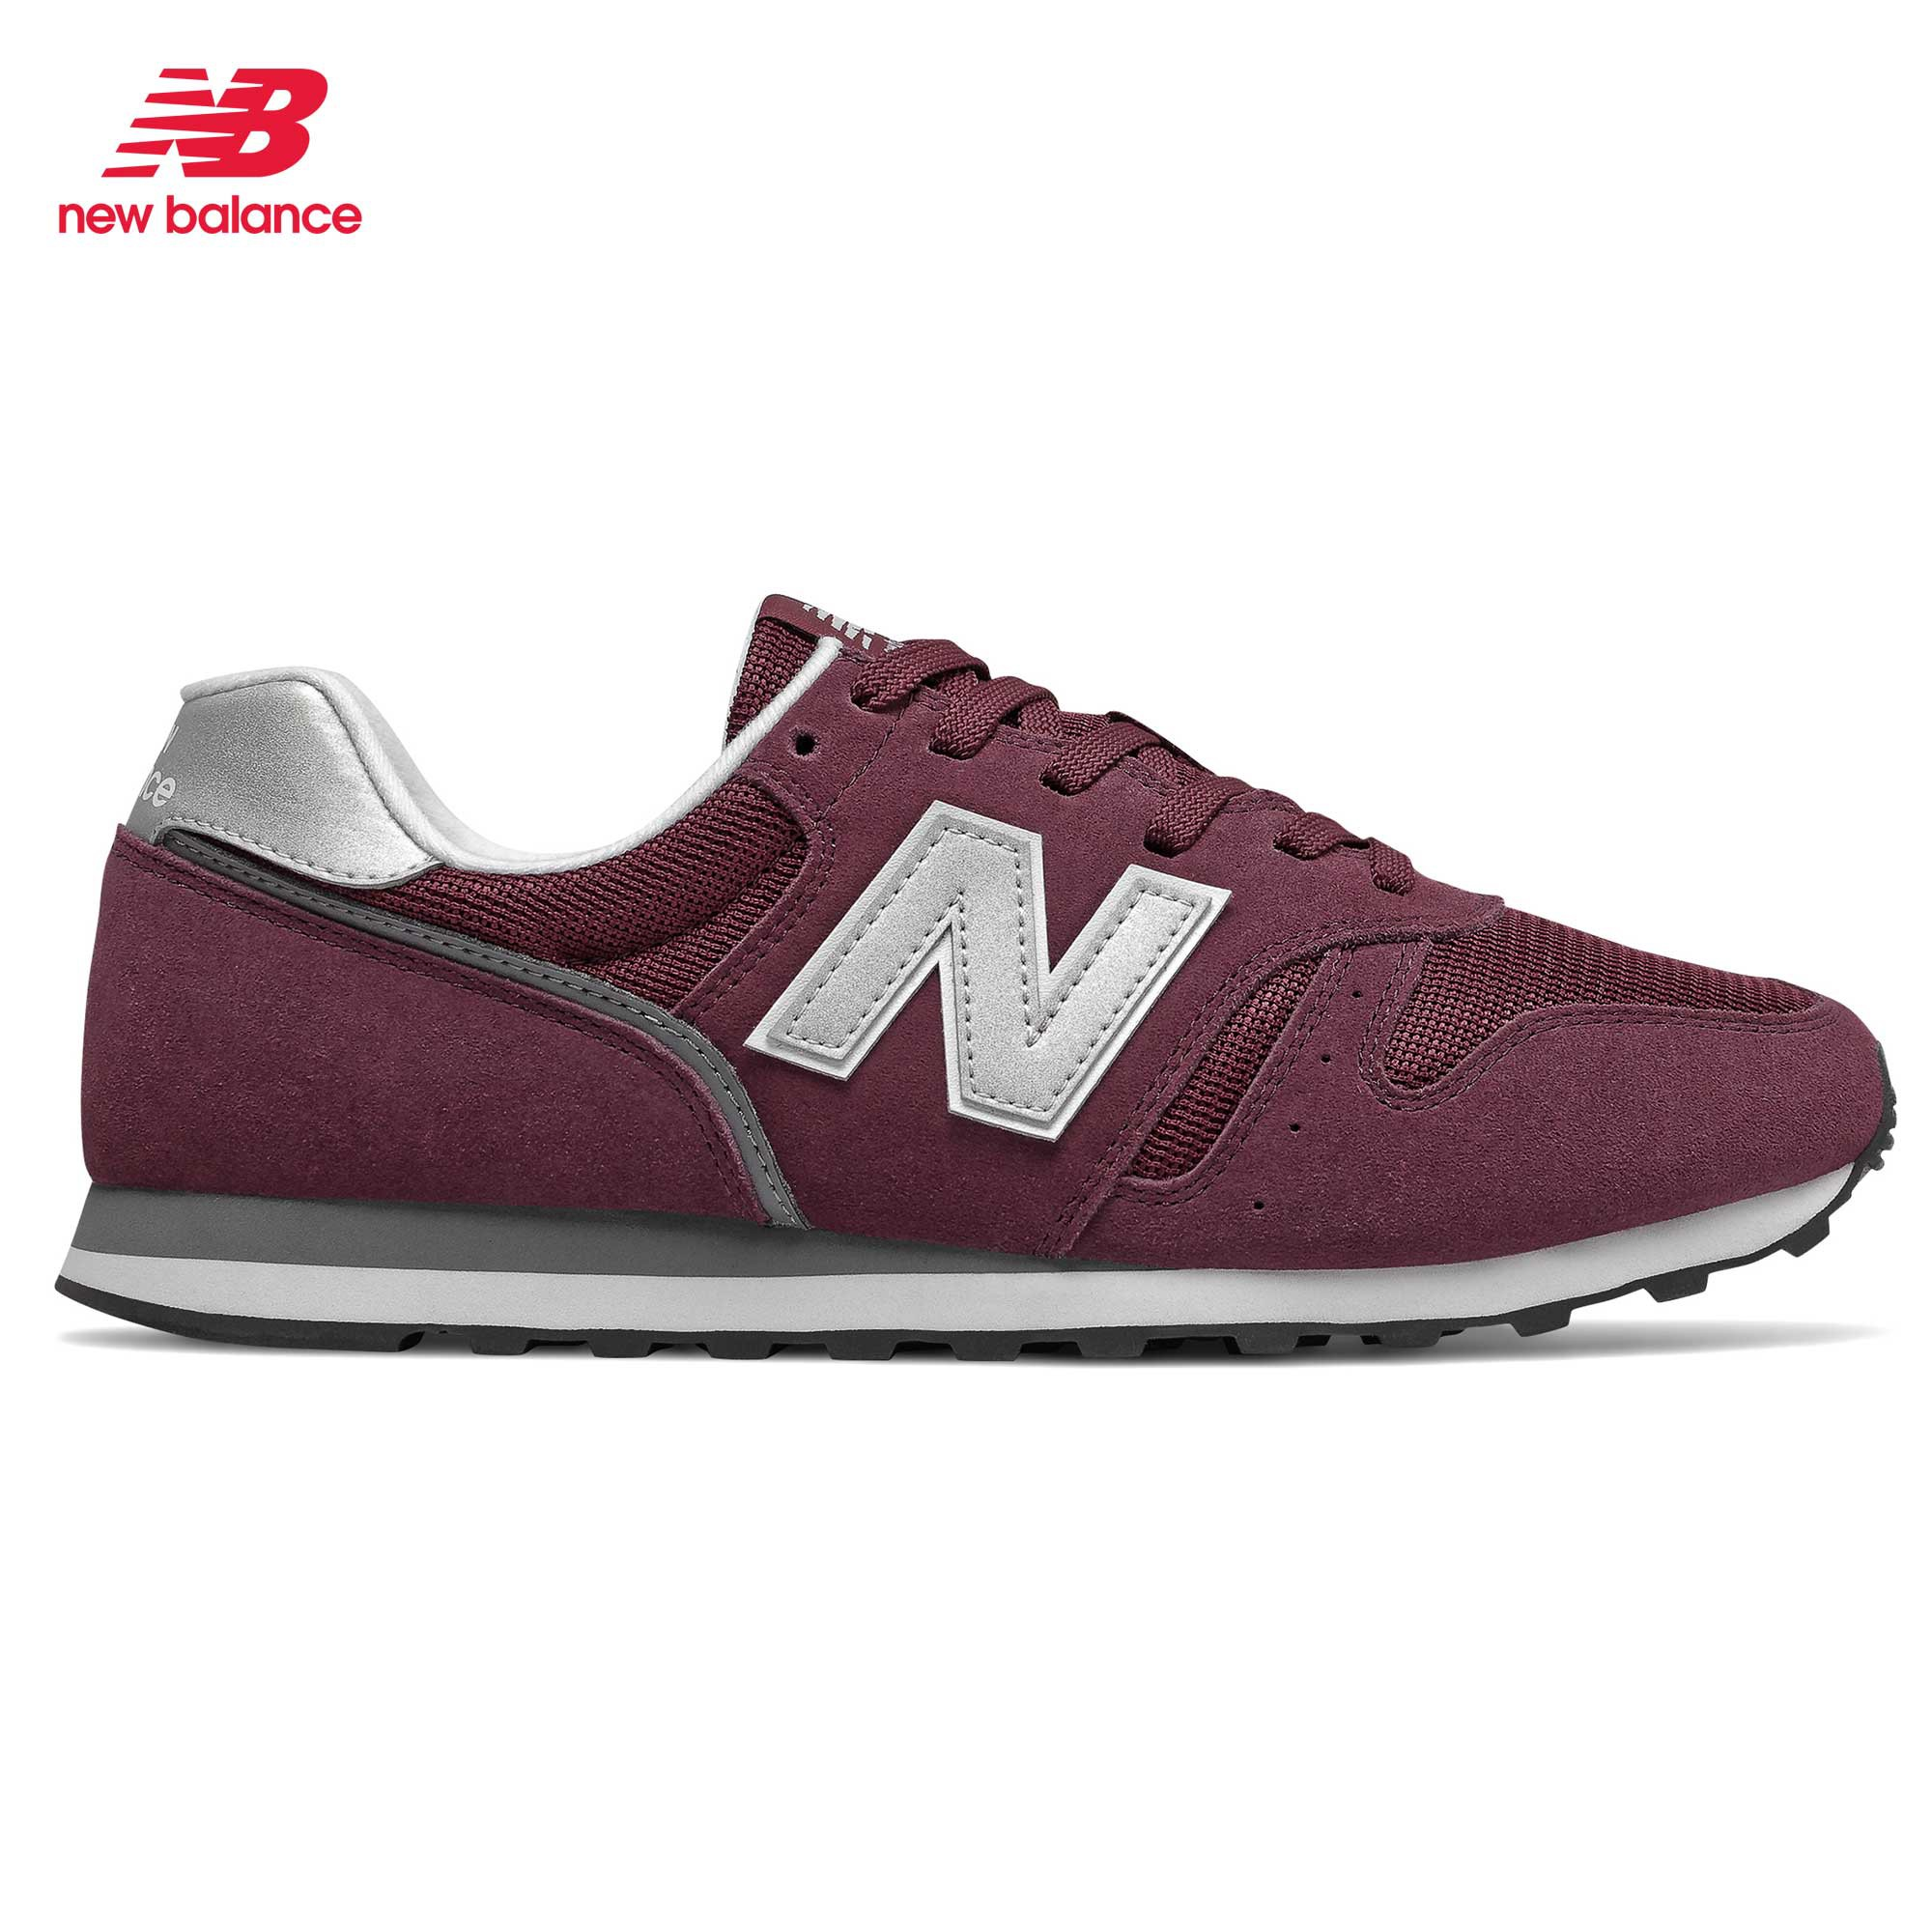 Itaca aumento cráneo  New Balance 373 Classic Lifestyle Shoes for Men (Maroon) | Shopee  Philippines